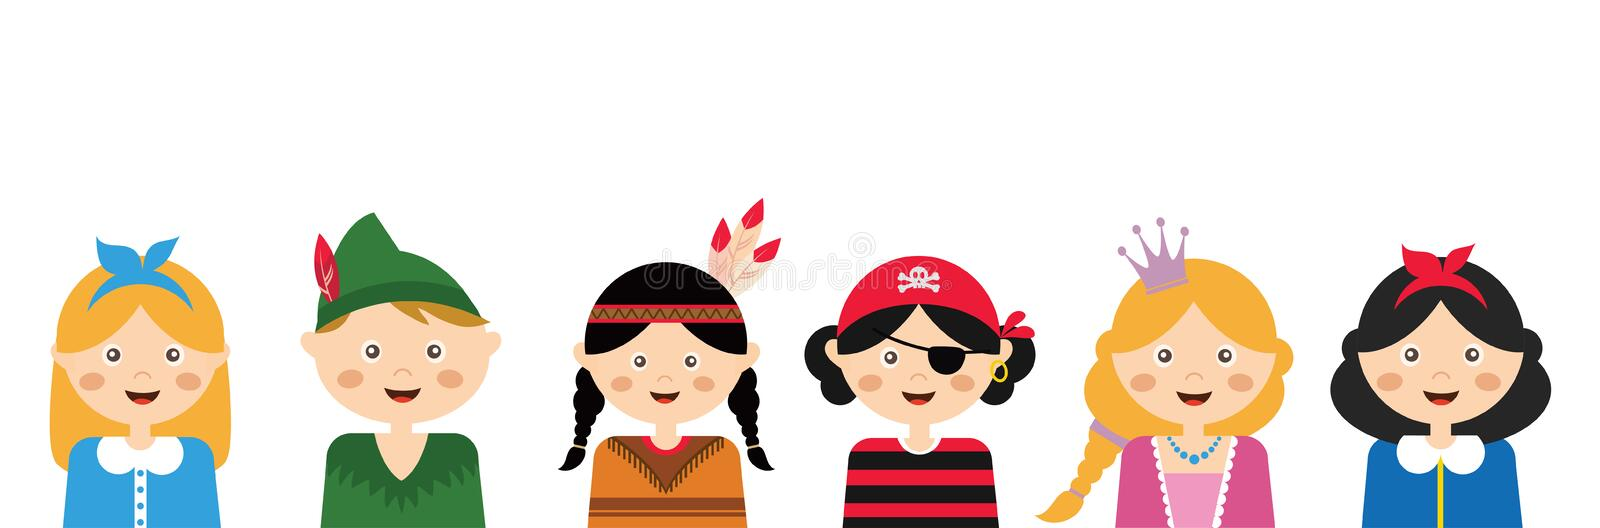 Kids wearing different costumes . banner template vector illustration